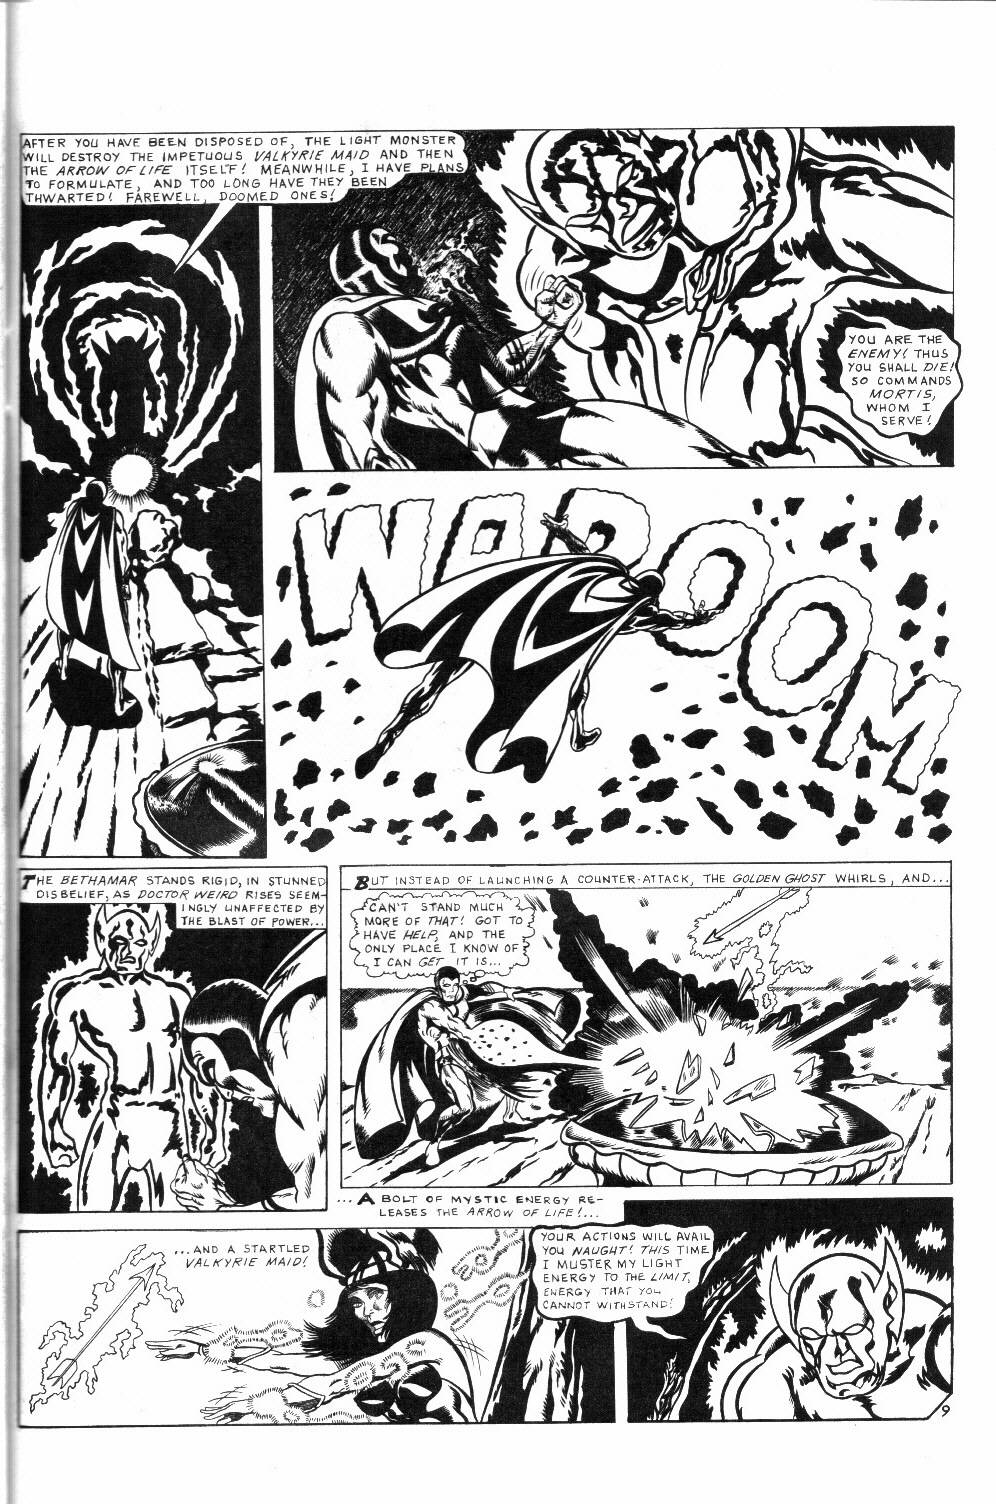 Read online Dr. Weird Special comic -  Issue # Full - 51